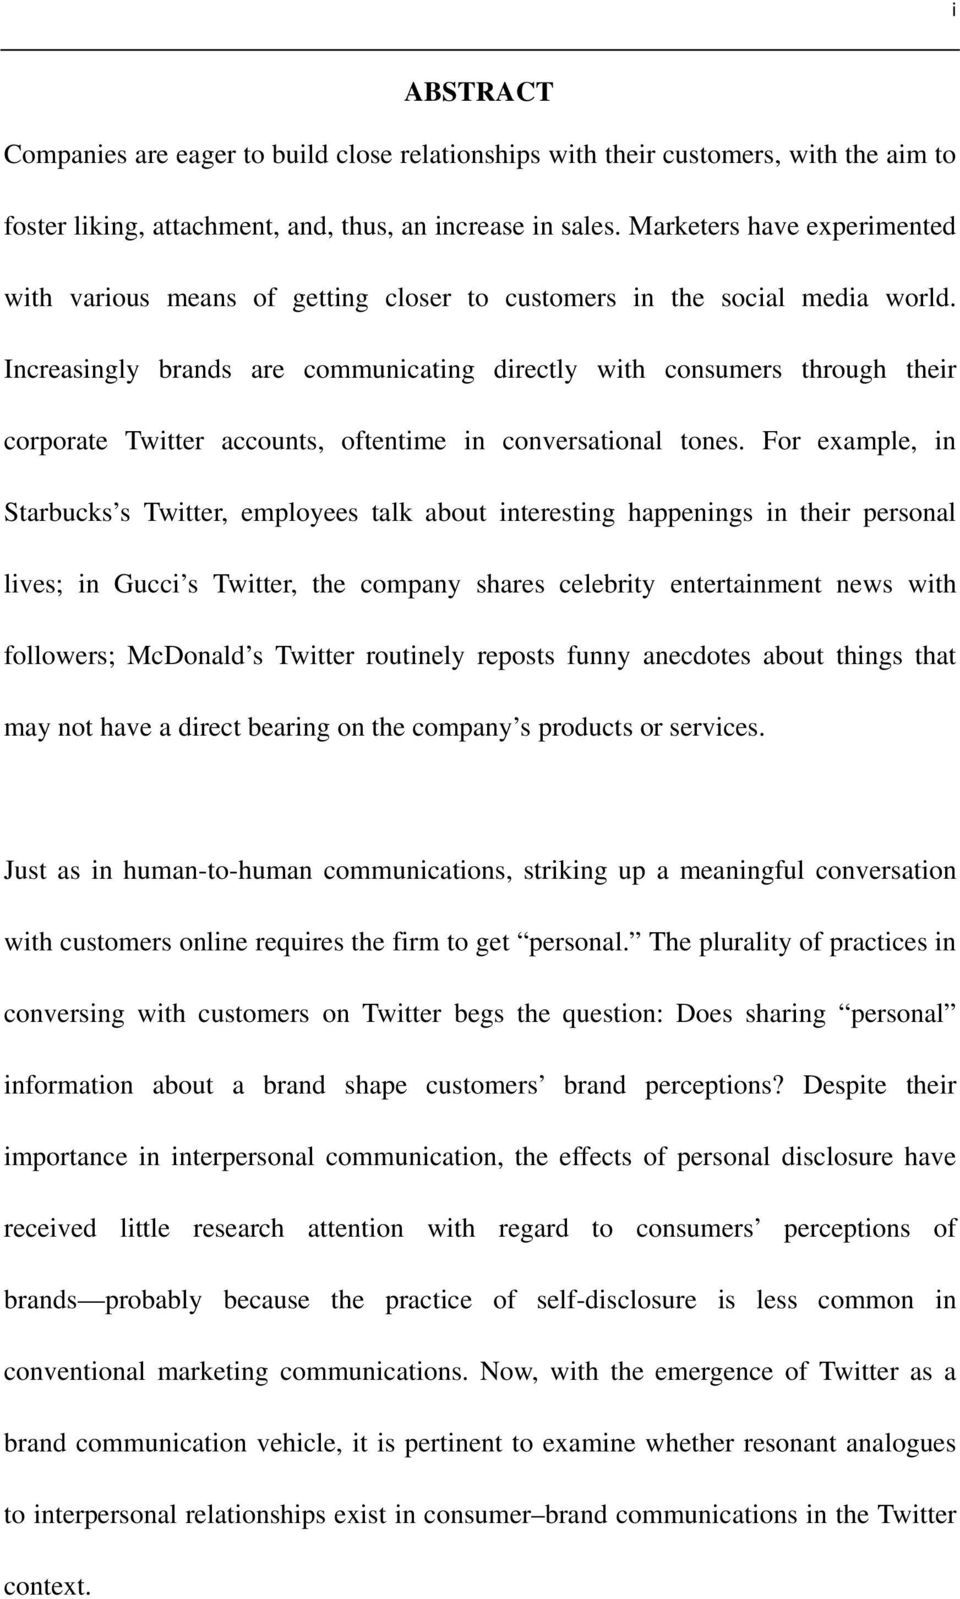 Increasingly brands are communicating directly with consumers through their corporate Twitter accounts, oftentime in conversational tones.